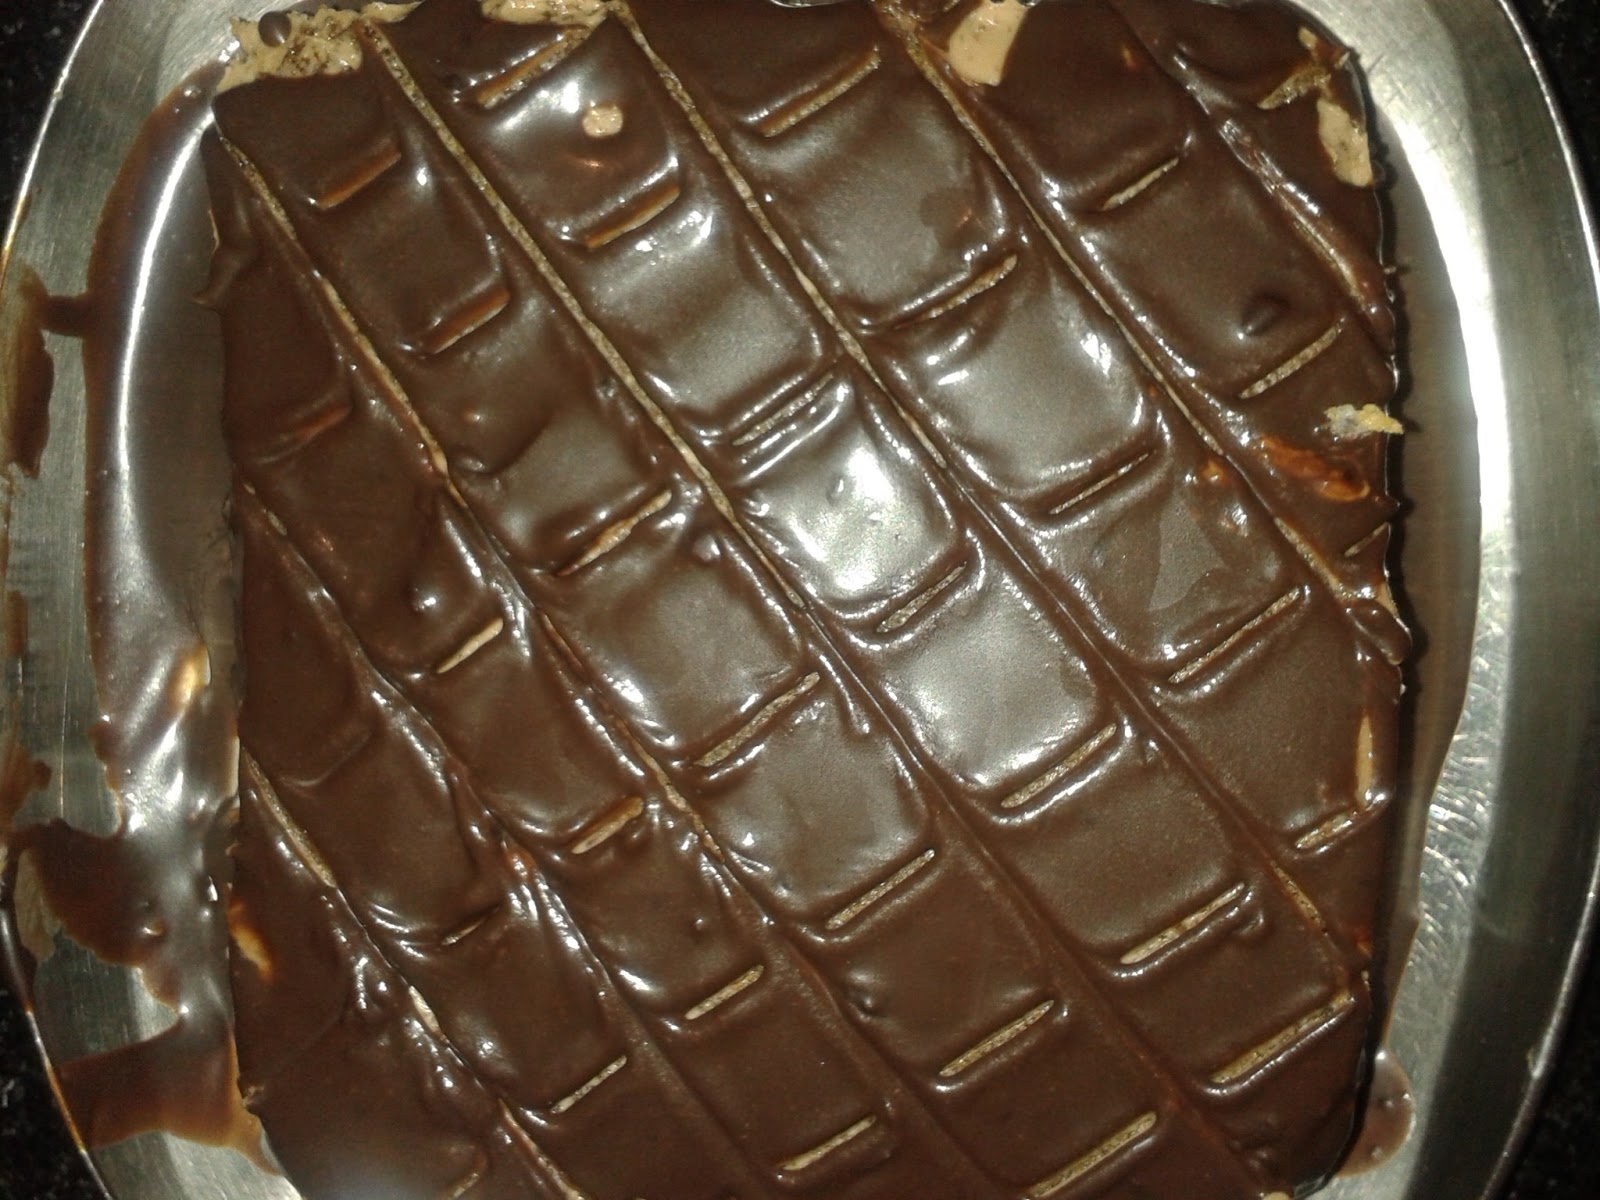 Indian Vegetarian Recipes: Chocolate Cake with Chocolate ...